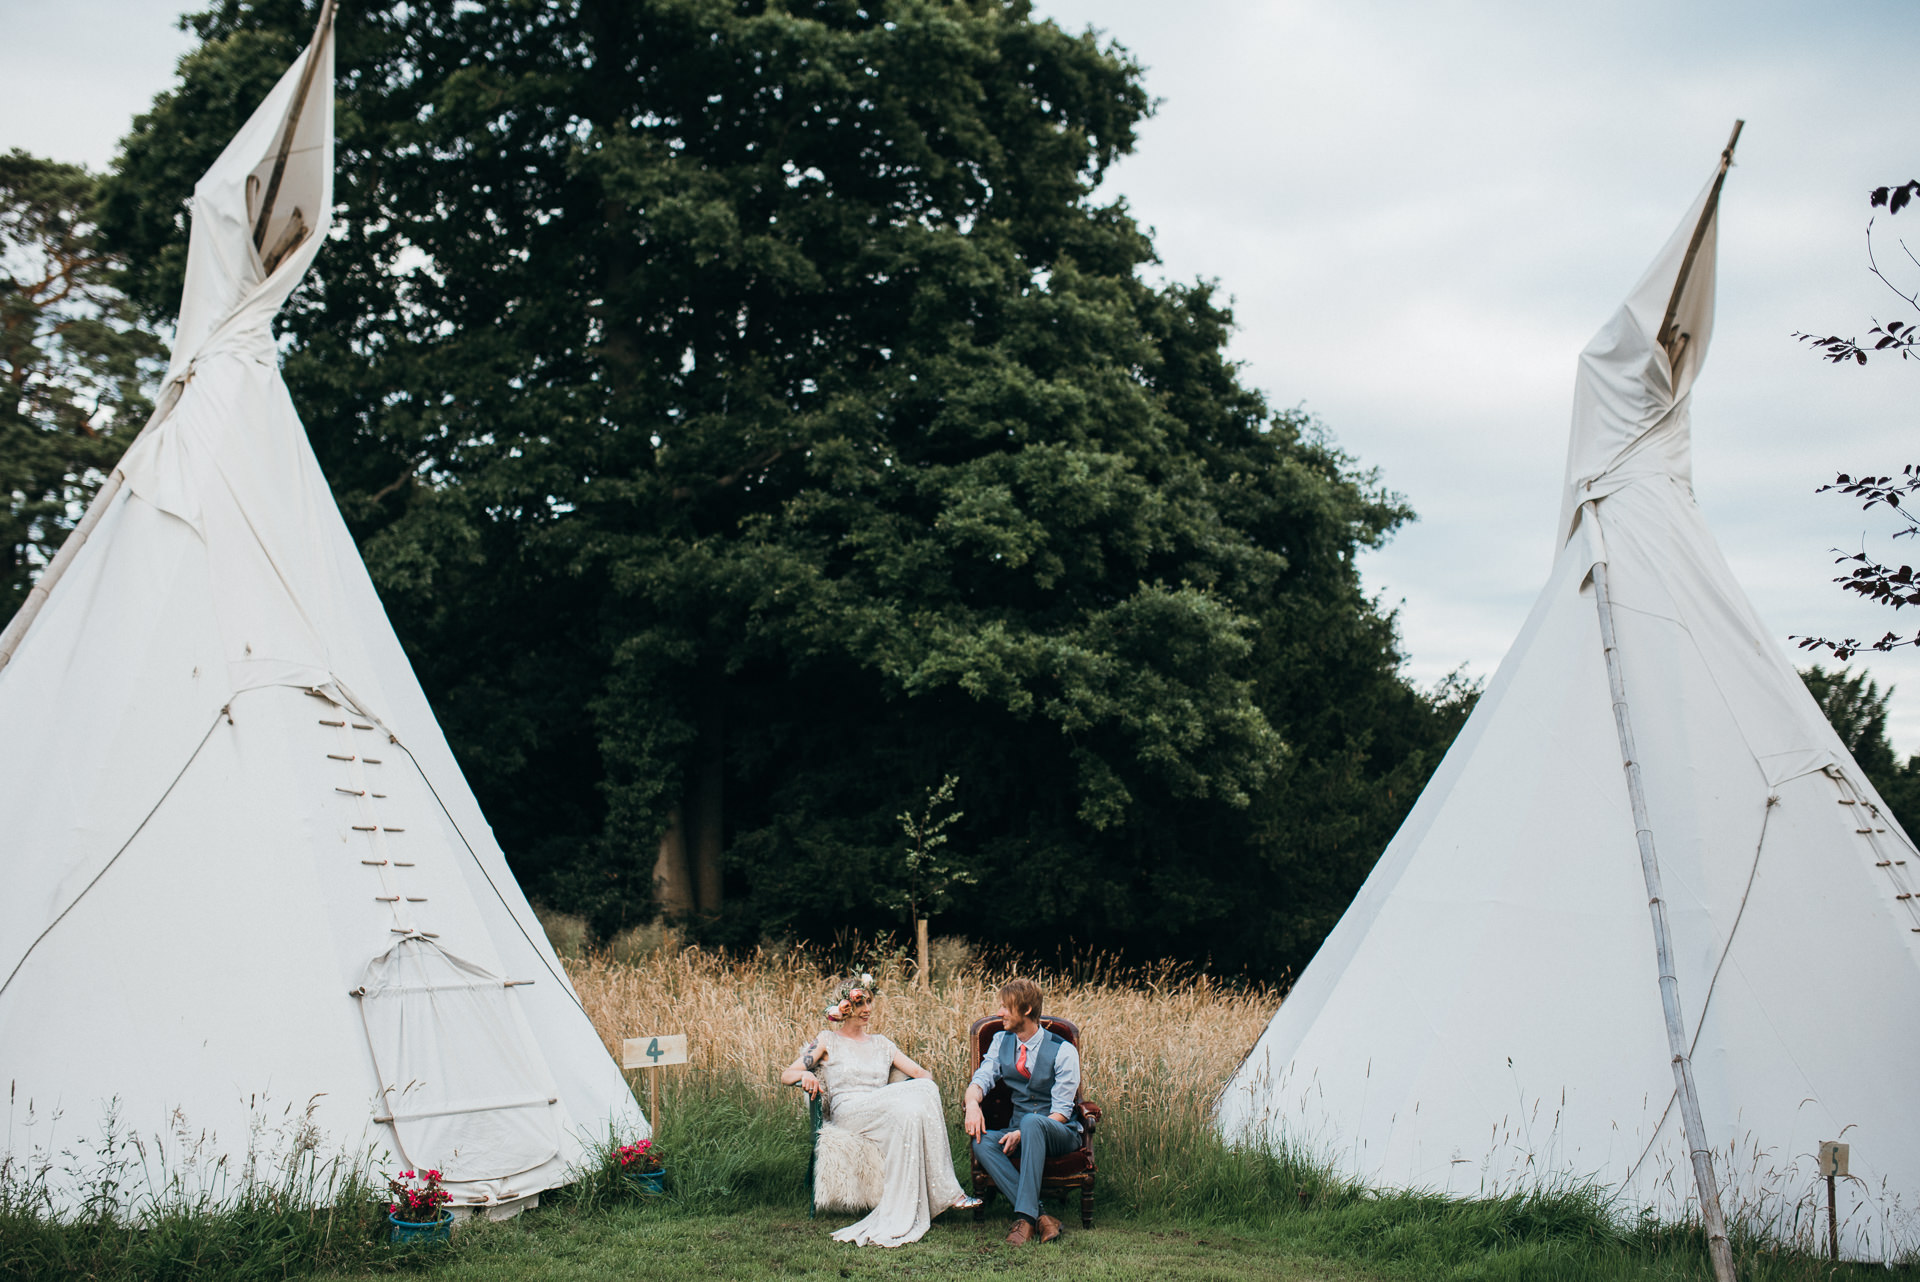 Pennard house wedding tents and newlyweds